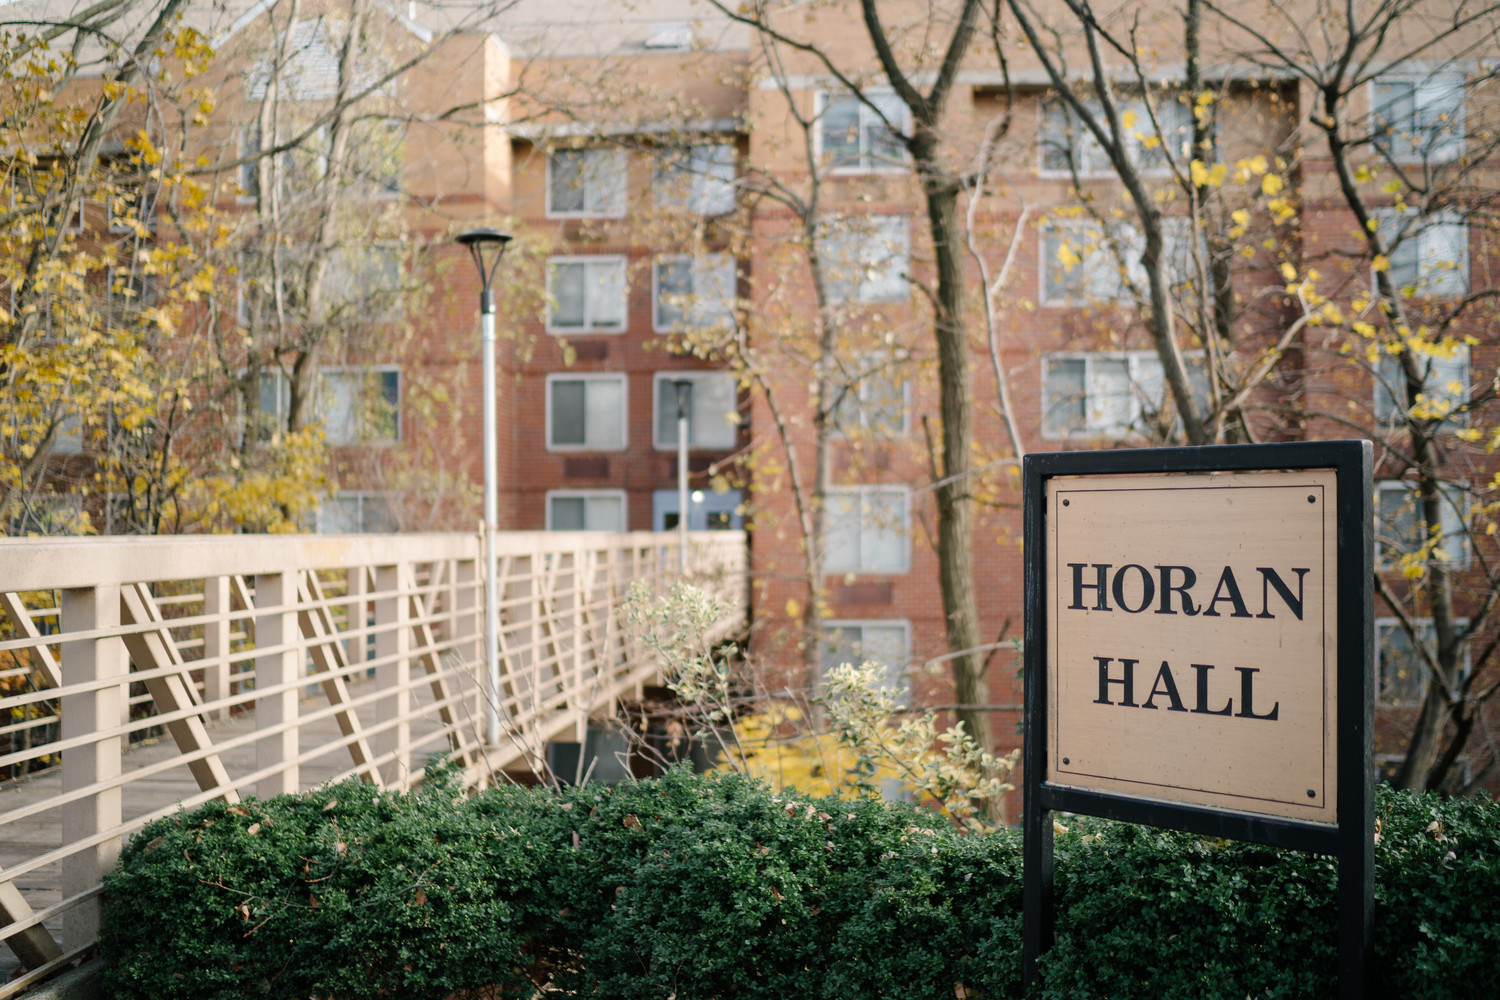 SUMMER INTERN HOUSING Horan Hall